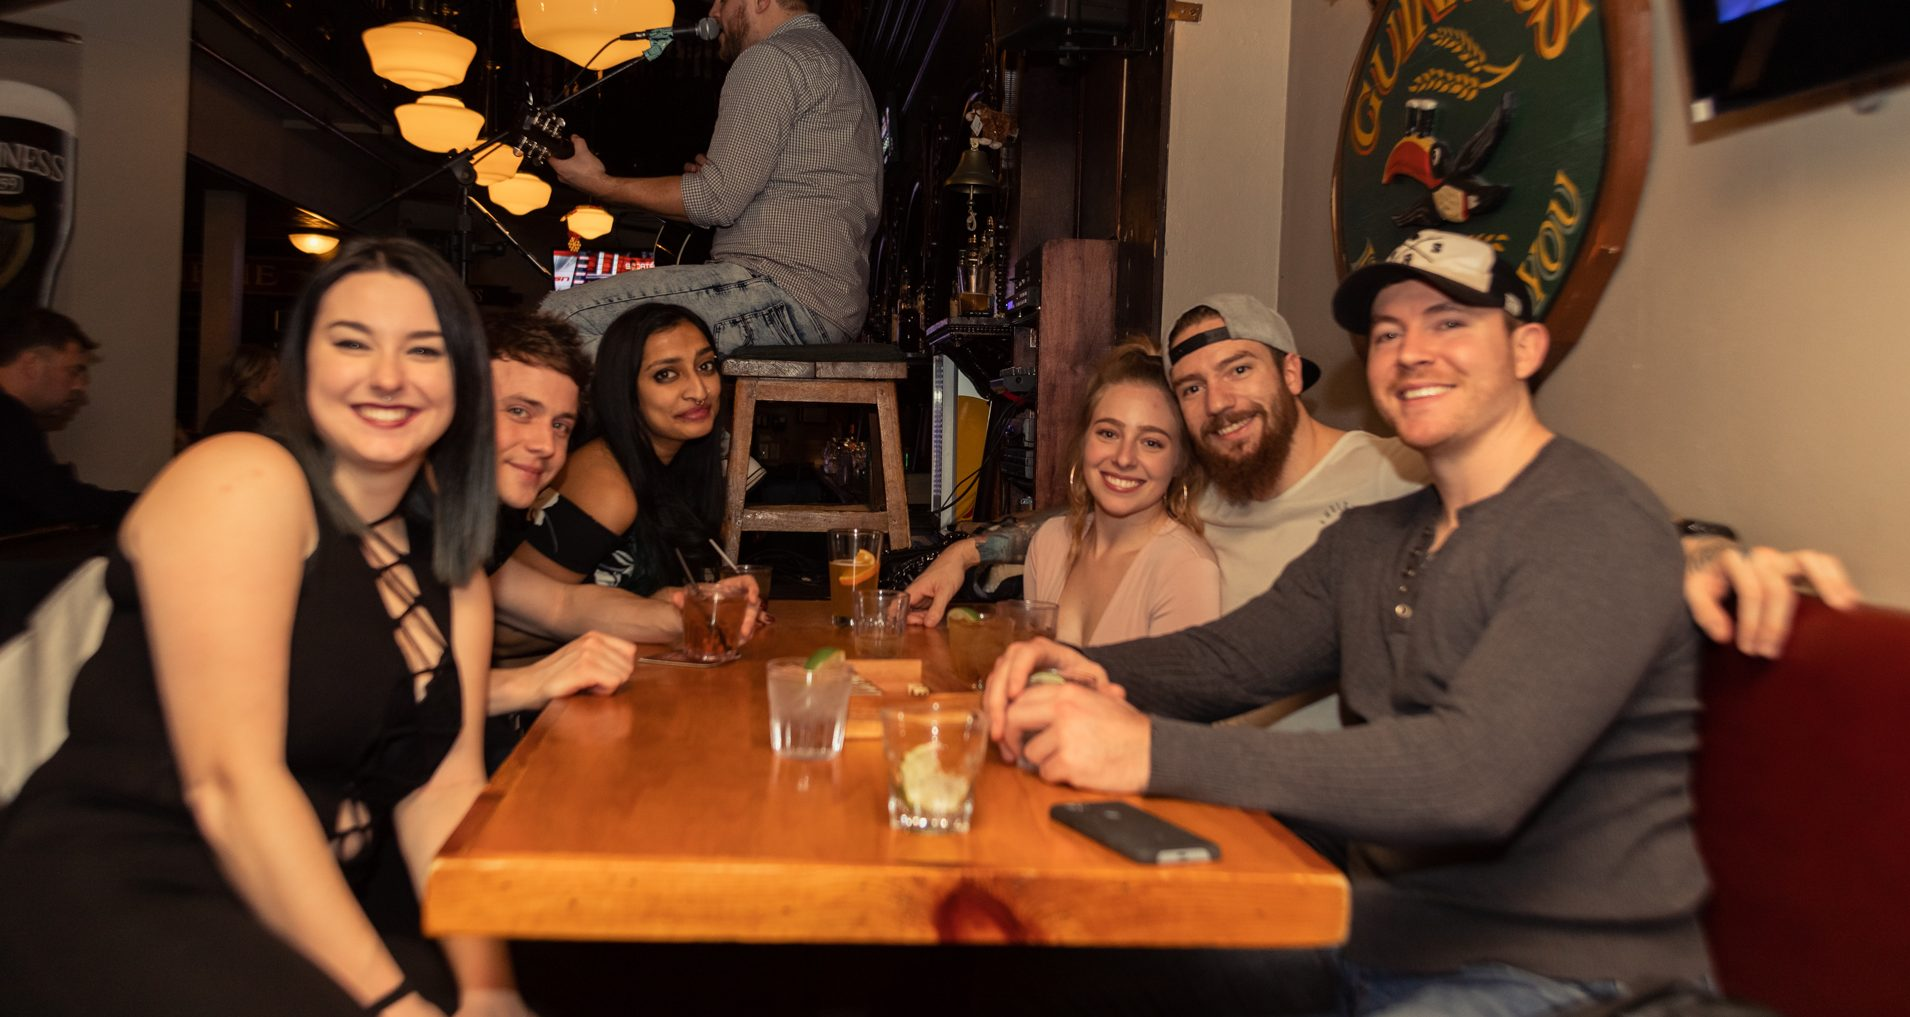 Group Of Friends Enjoying Food And Drinks At An Ottawa Irish Pub